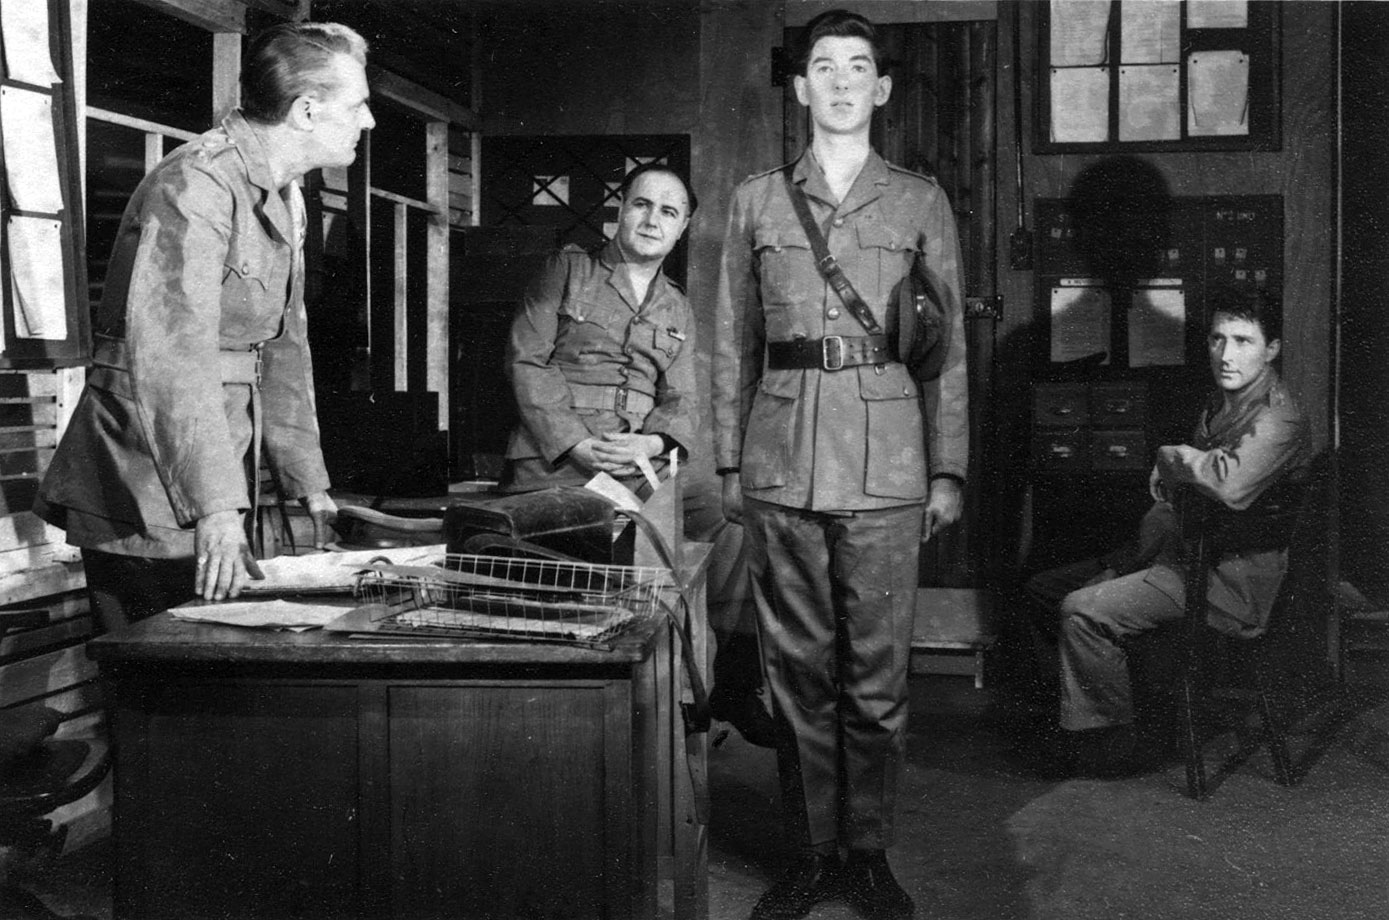 L to R: Richard Aylen, John Bryans, Ian McKellen, Mark Eden <BR><BR><em>''End of Conflict'' was my first time in military uniform onstage.  I learnt the basics of soldierly mien and drill, which have been constantly useful since.</em>